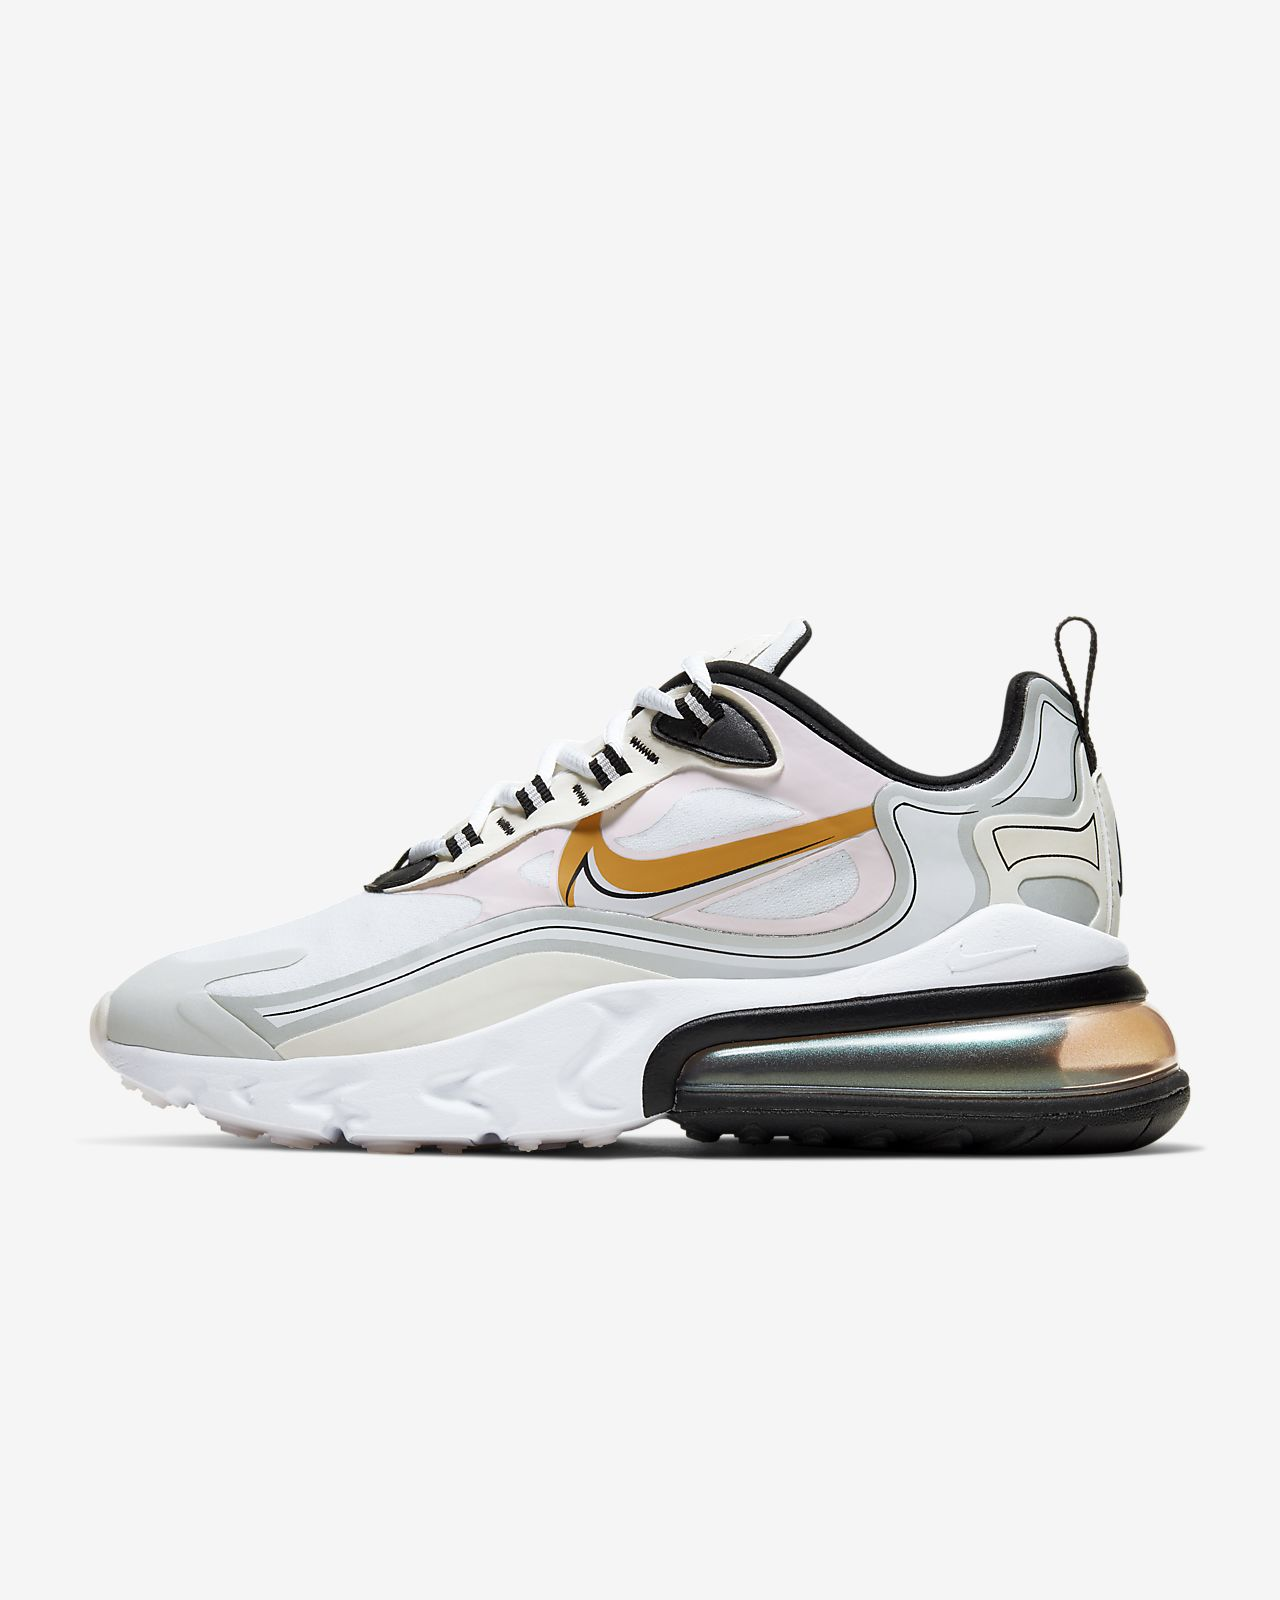 Nike Air Max 270 React LX Damesschoen